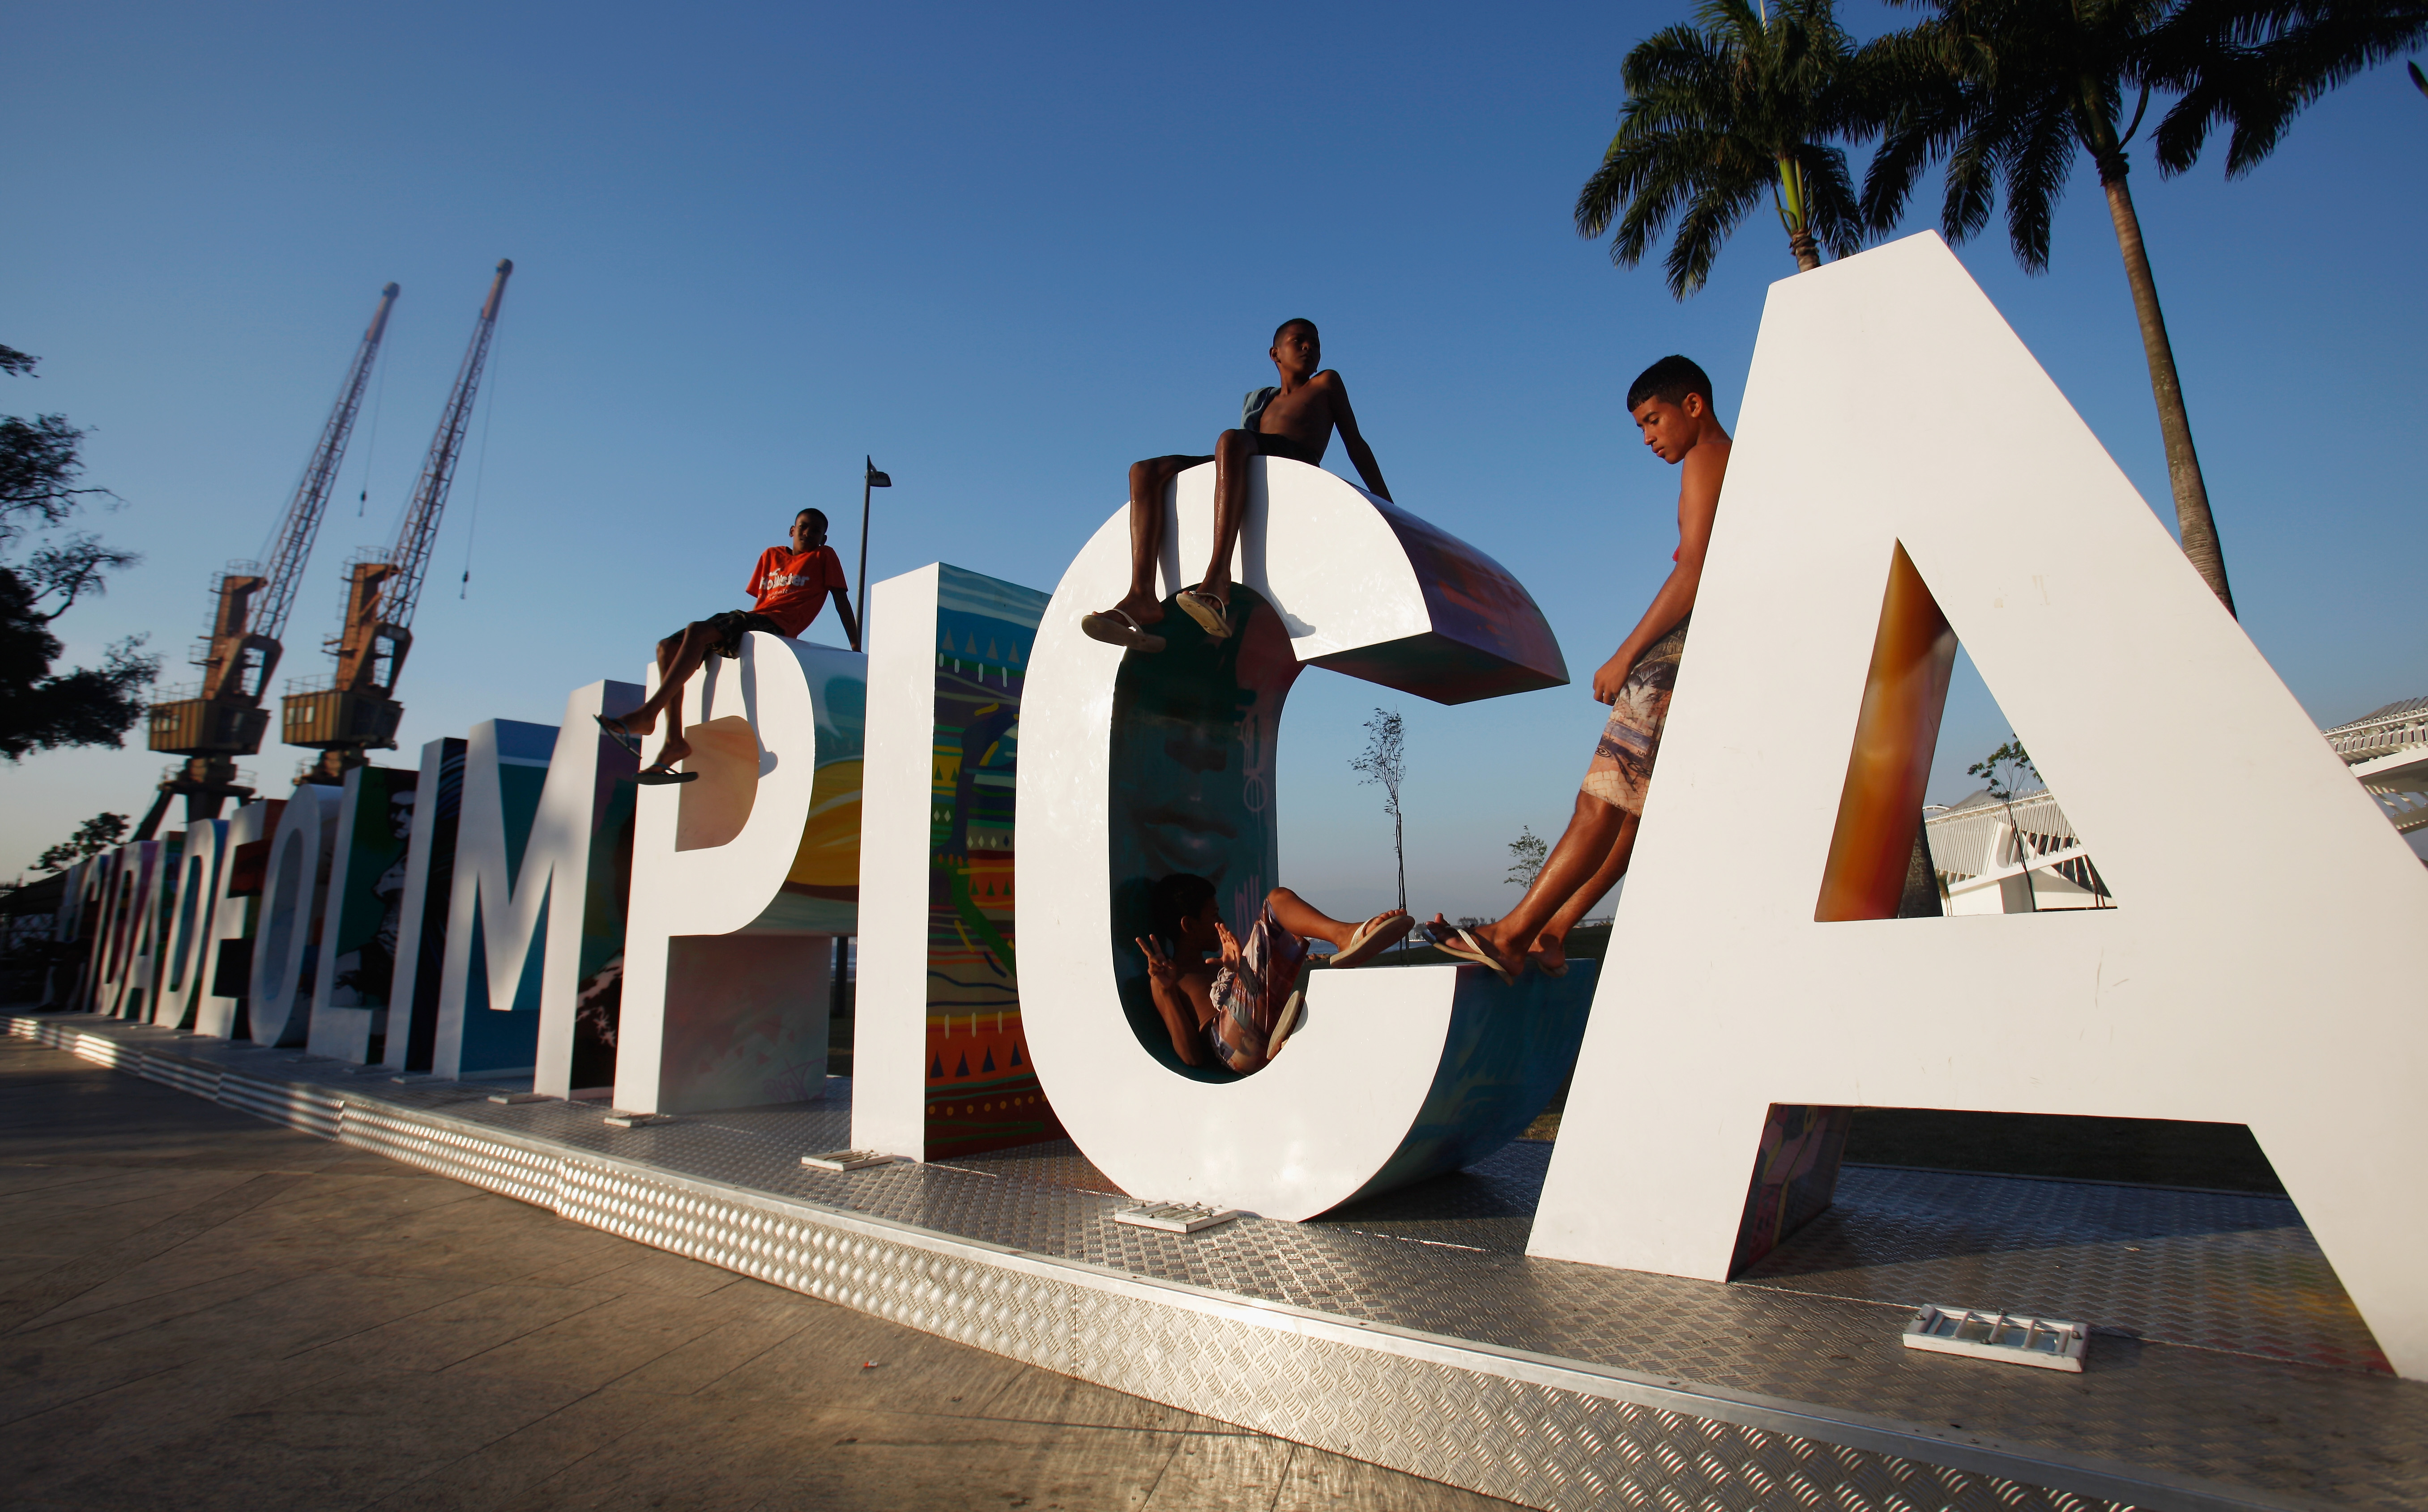 Teens sit on a new sign reading 'Cidade Olimpica' (Olympic City) in the historic port district in Rio de Janeiro, Brazil on Oct. 15, 2015.